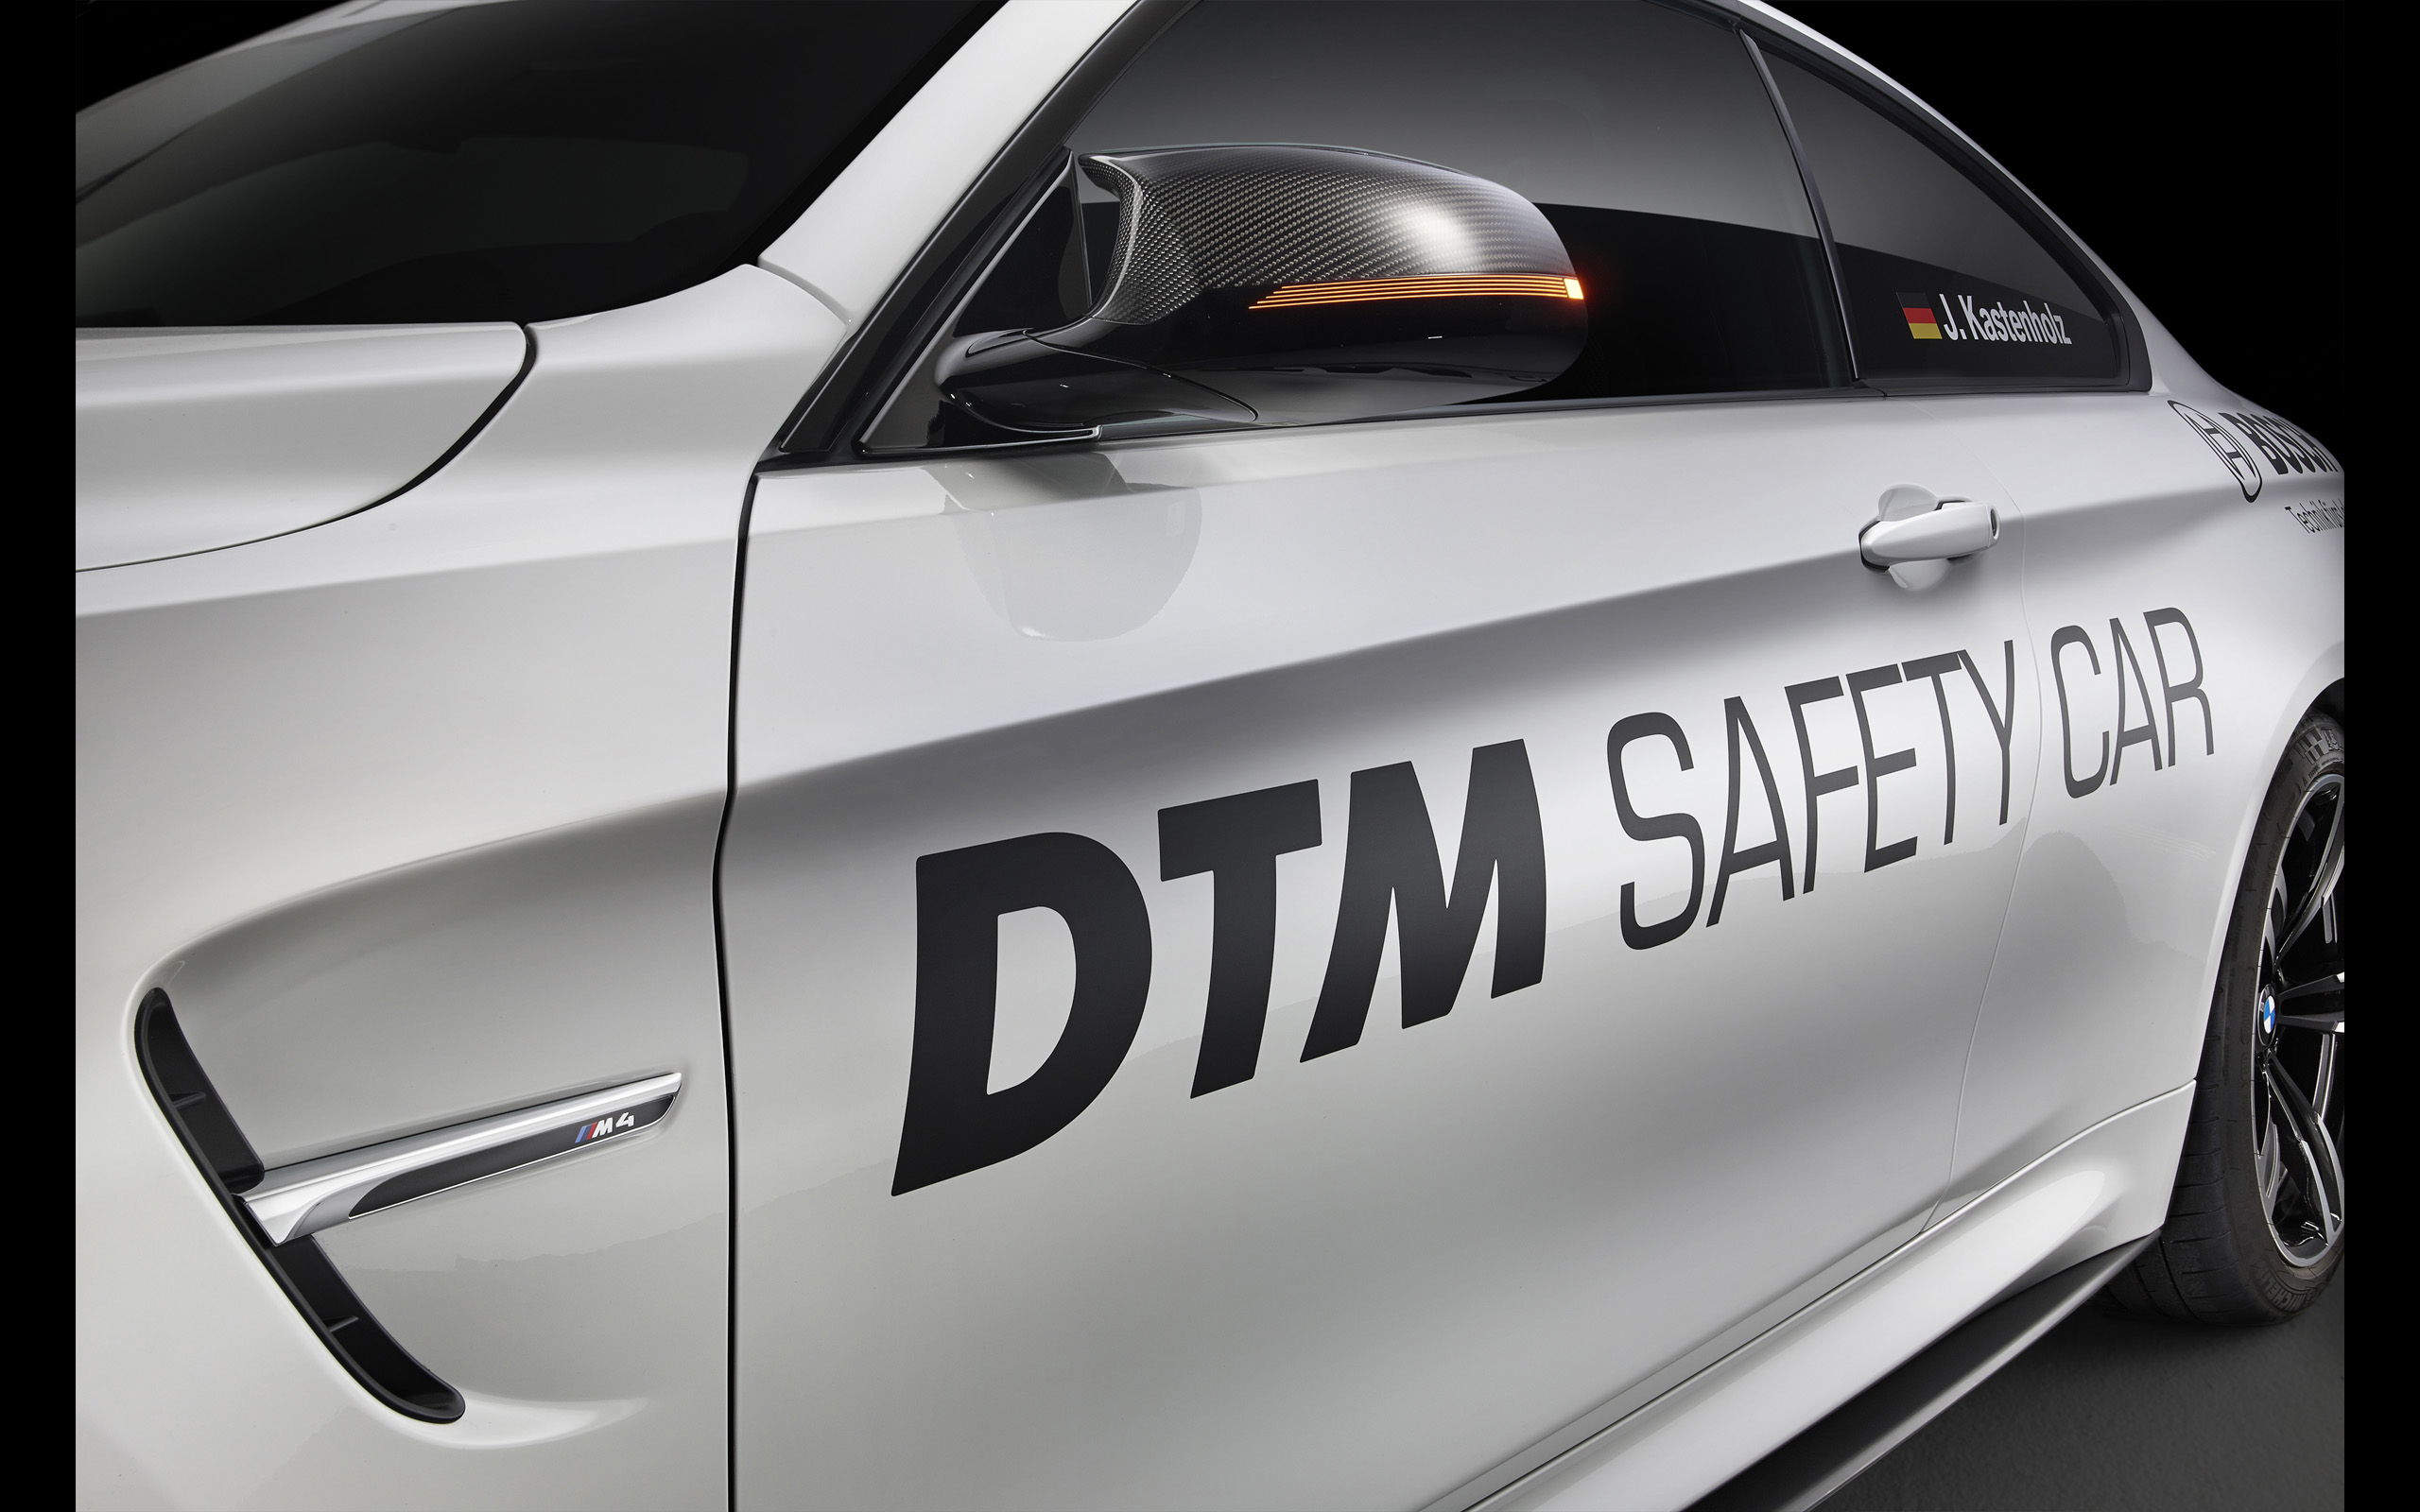 2019 BMW M4 Coupe DTM Safety Car photo - 6